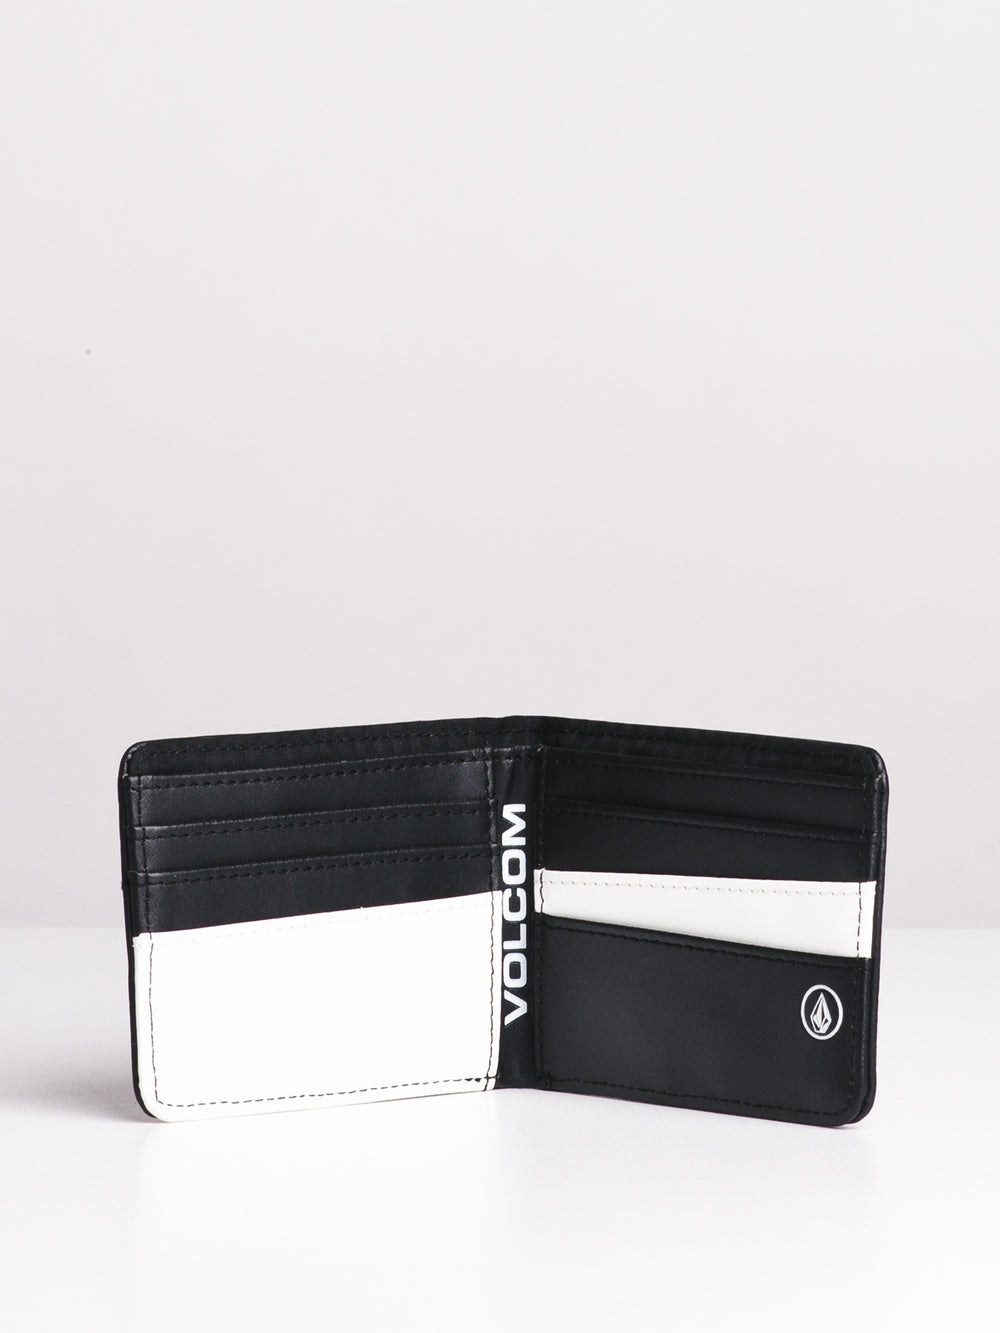 CORPS WALLET - BLACK